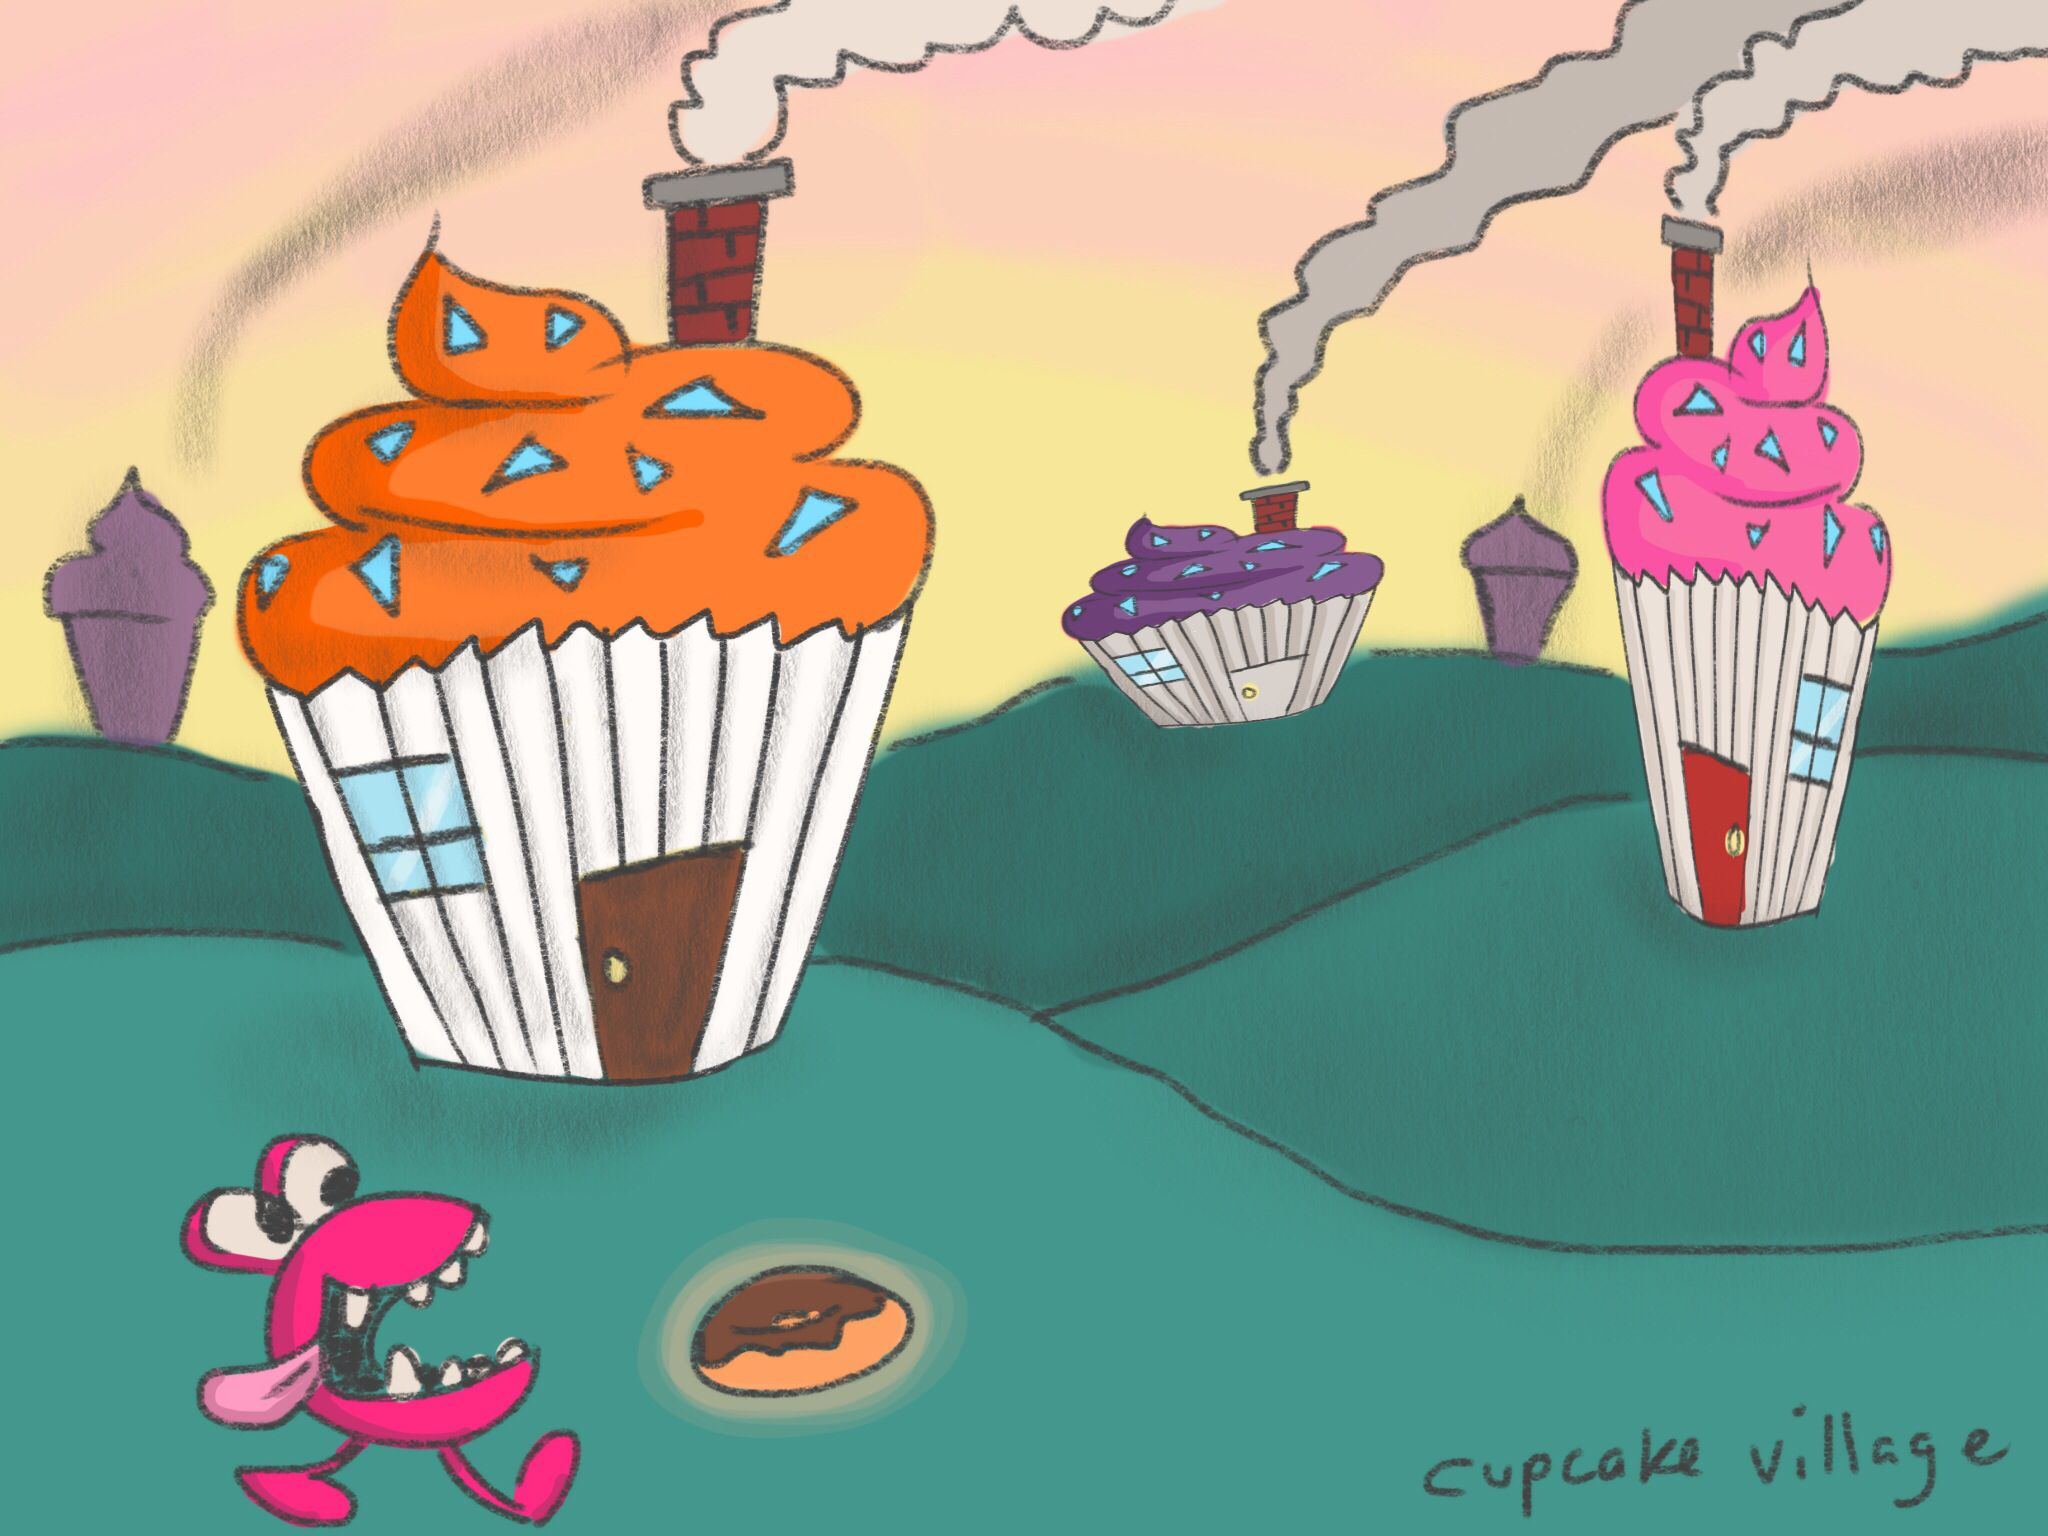 Nomster Concept Art Cupcake Village Nomsters Cupcake Art